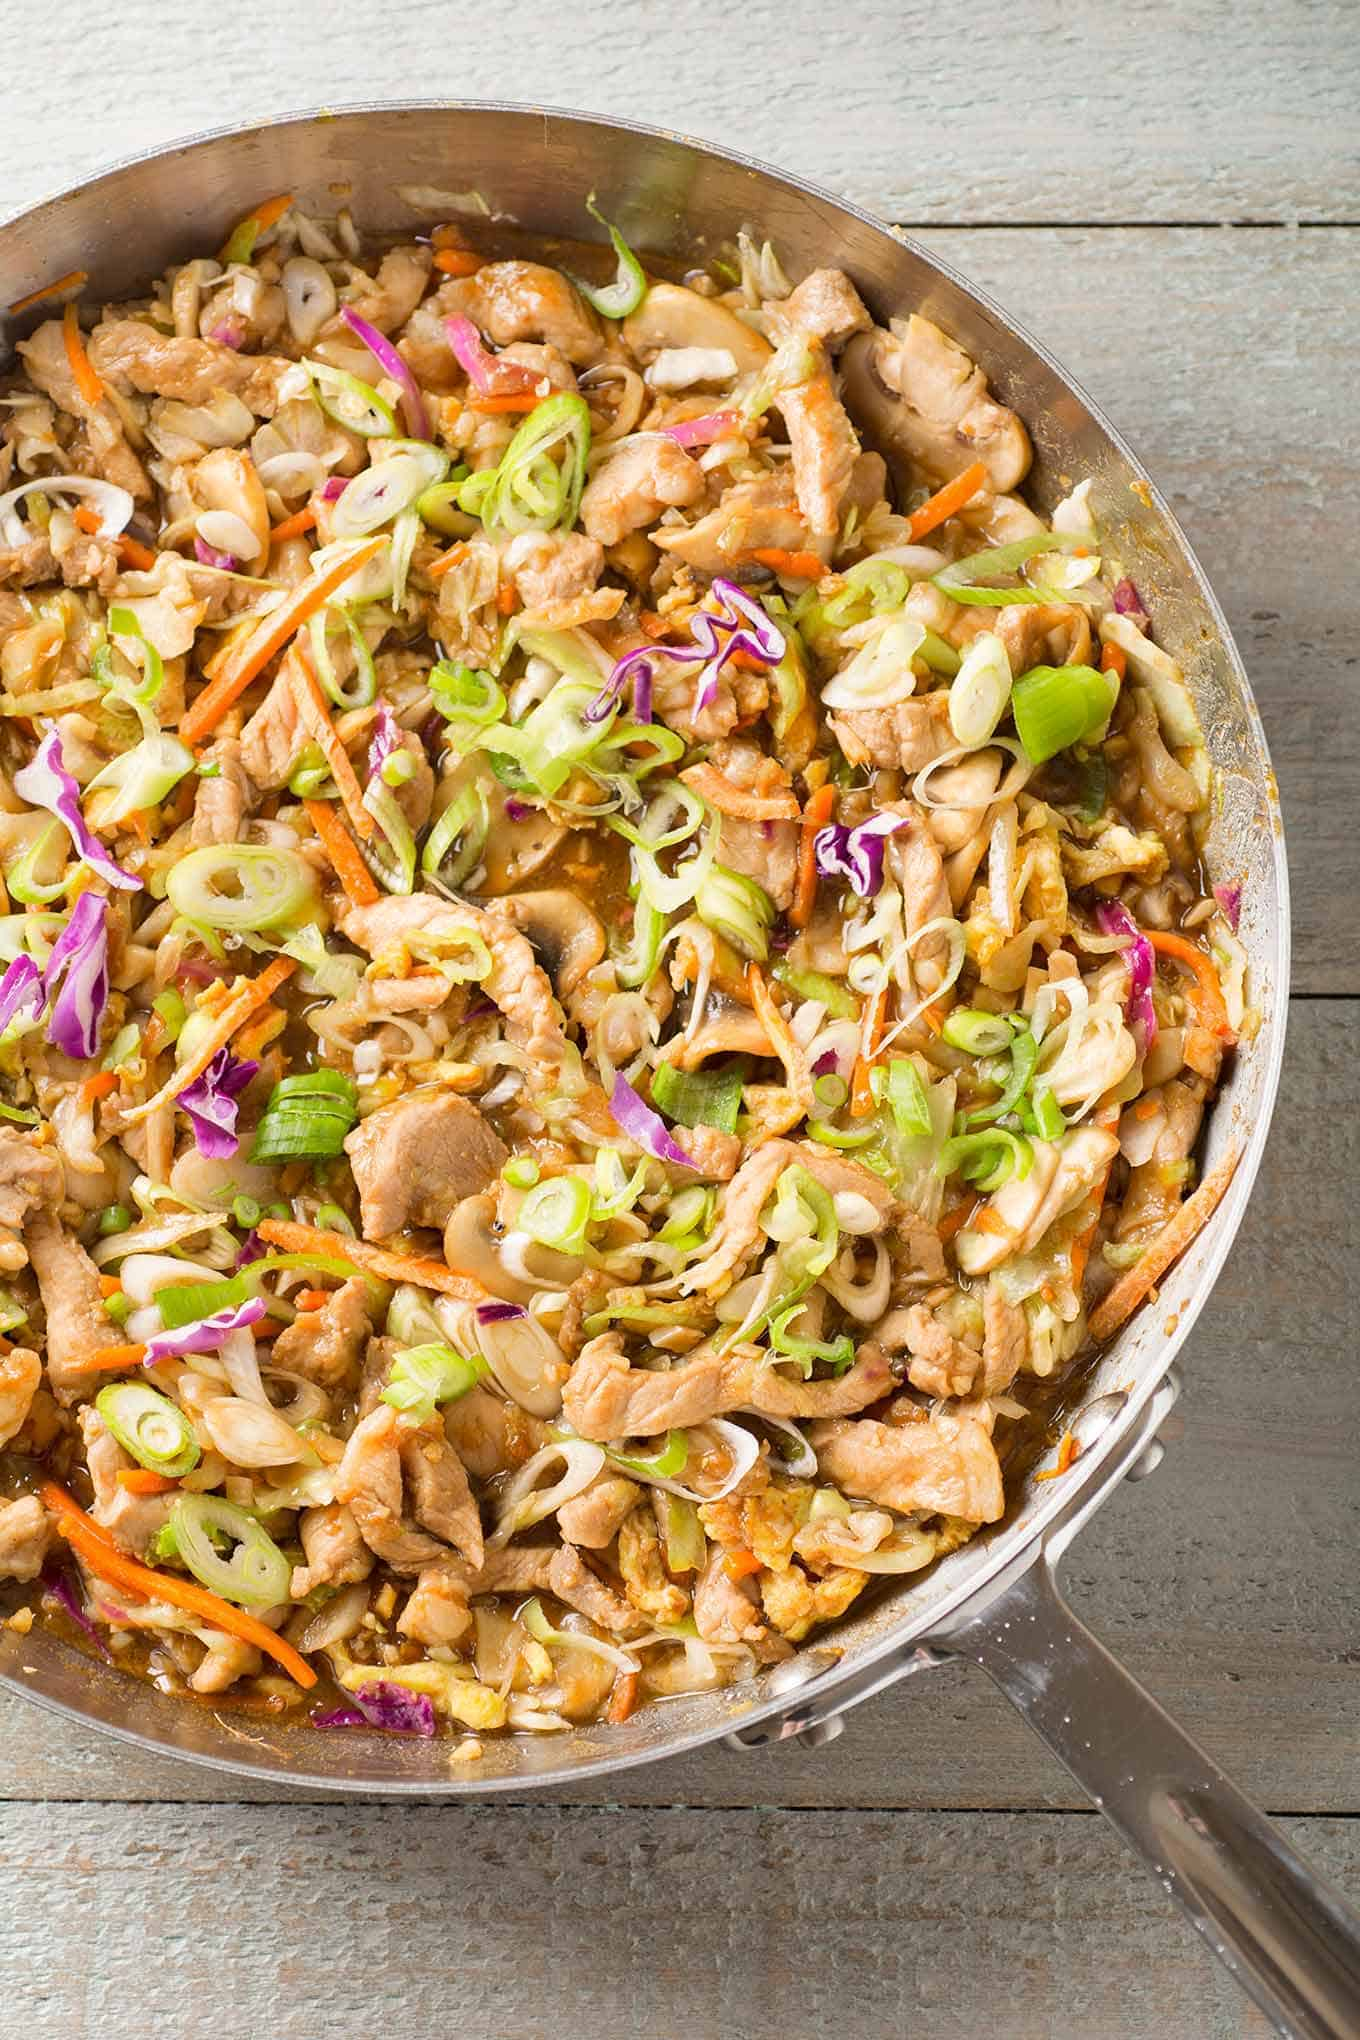 Moo Shu Pork in a frying pan made with stir-fried strips of pork, scallions, cabbage, and carrots.